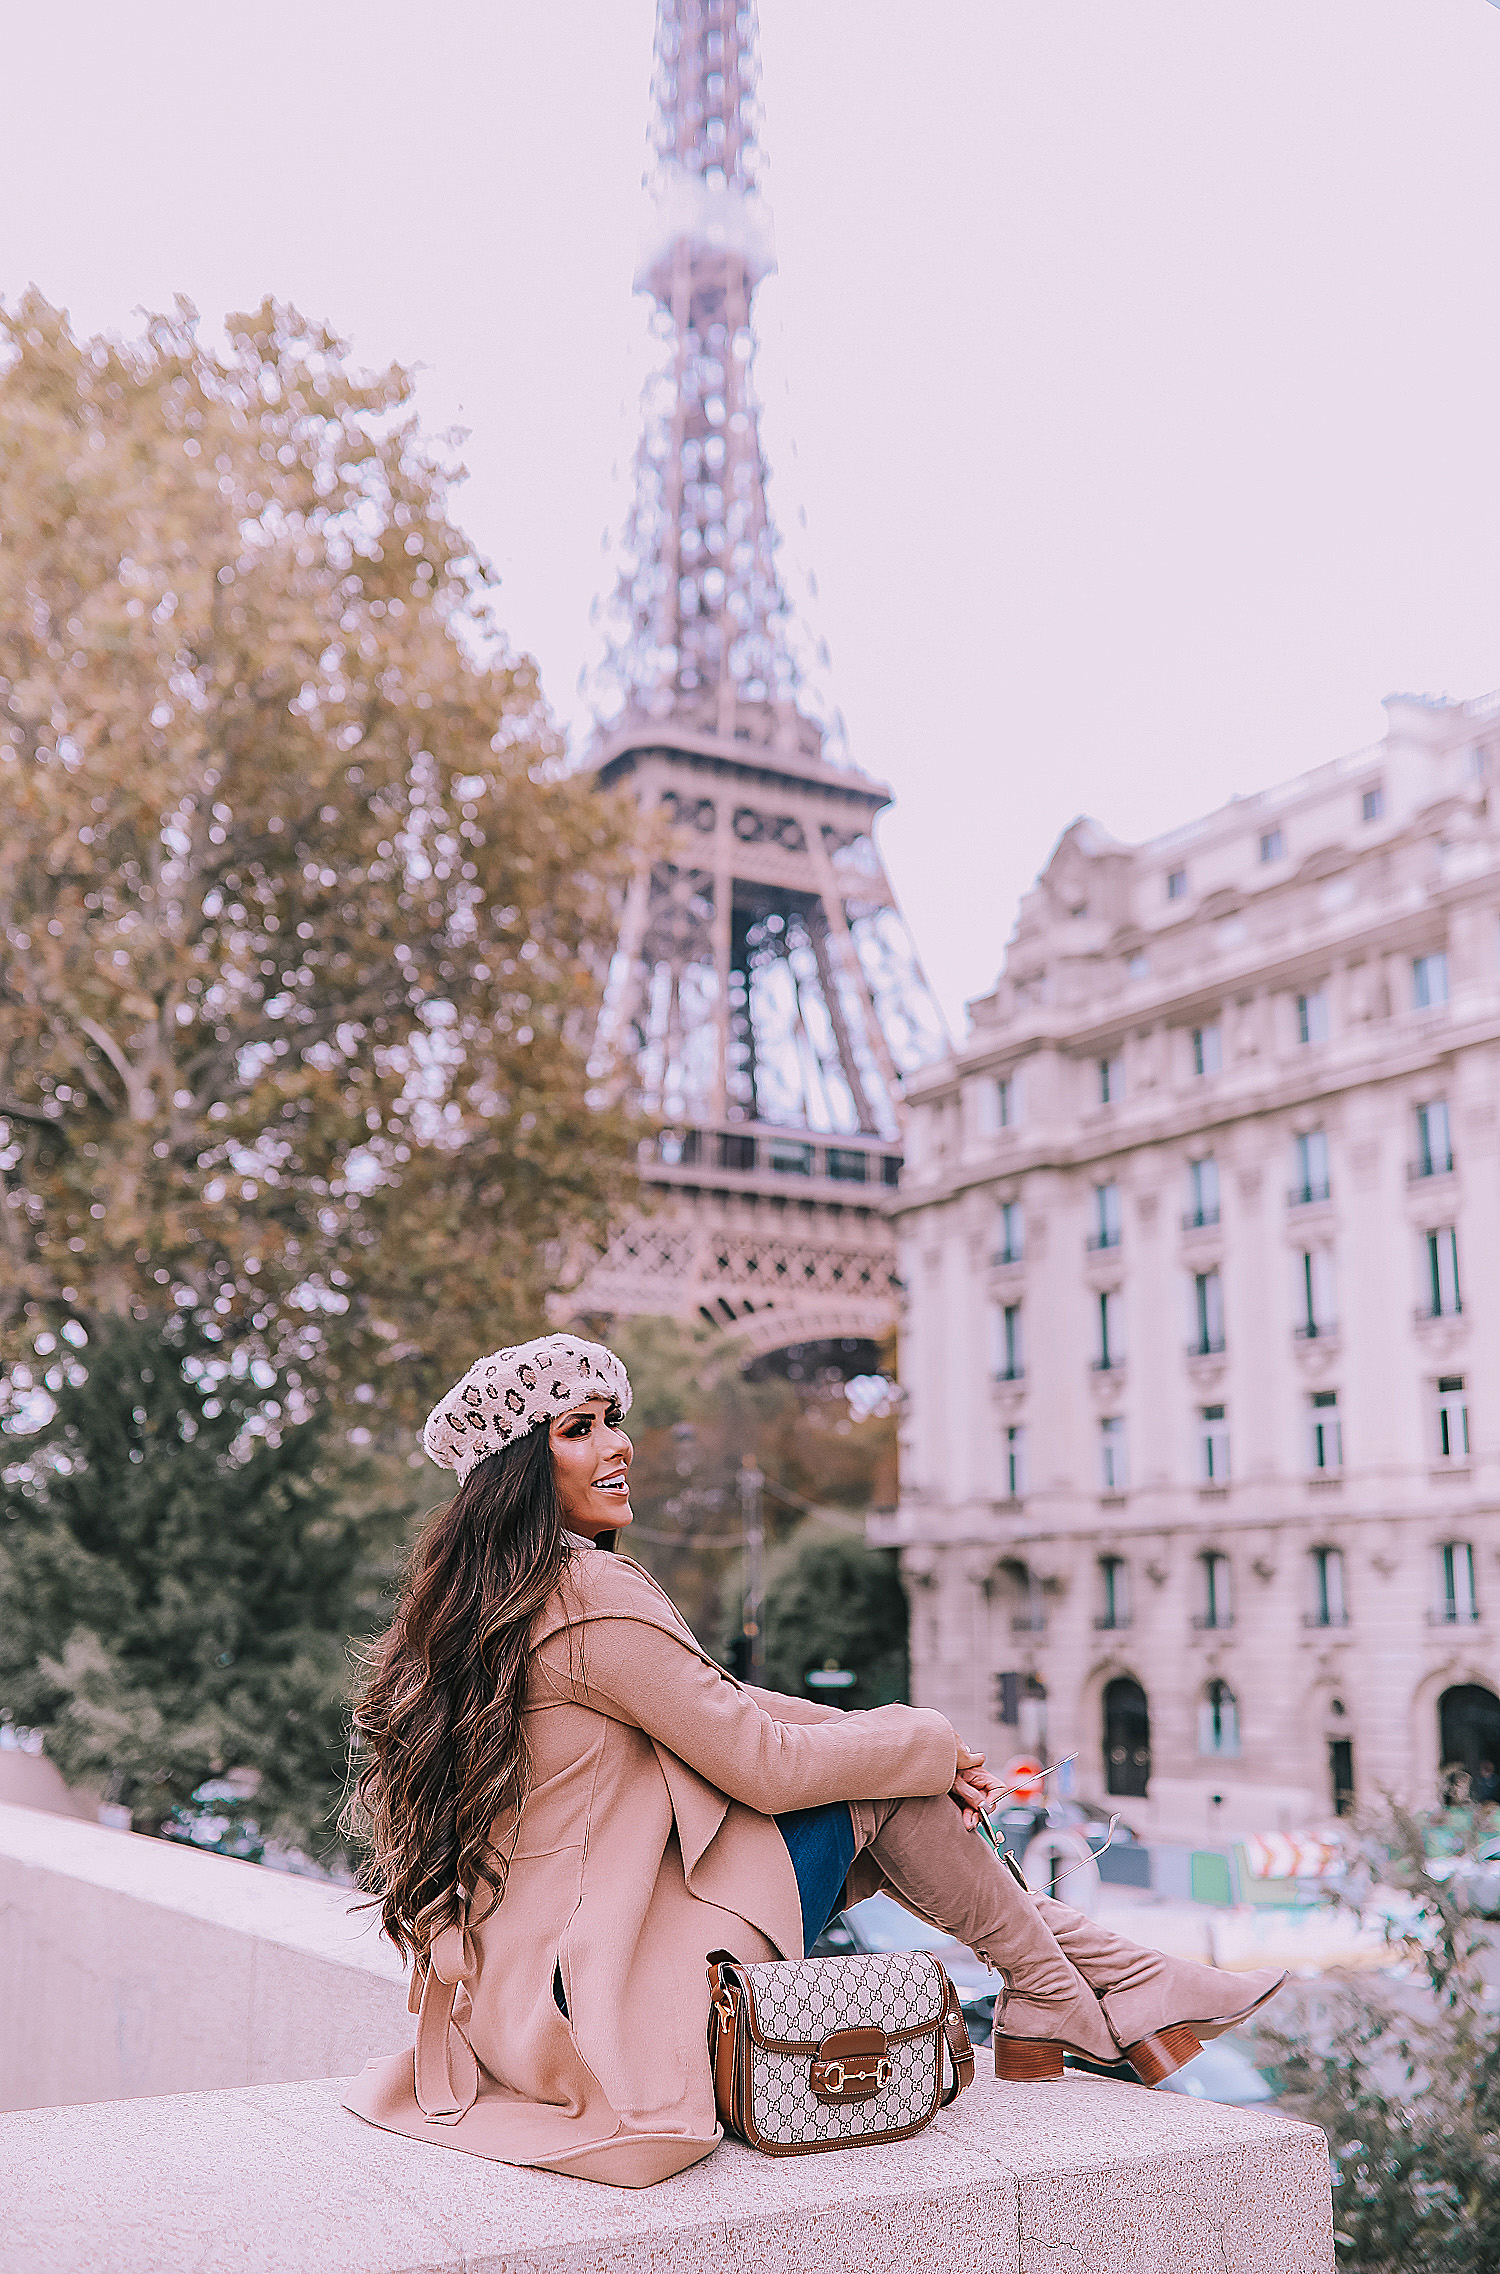 Fall outfit idea paris pinterest 2019| Over the knee boot outfit featured by top US fashion blog, The Sweetest Thing: image of a woman wearing  Gucci Horsebit 1955 Gucci Bag, leopard beret, taupe over the knee boots steve madden, emily gemma, Fall Fashion outfit ideas tan coat over the knee boots-2